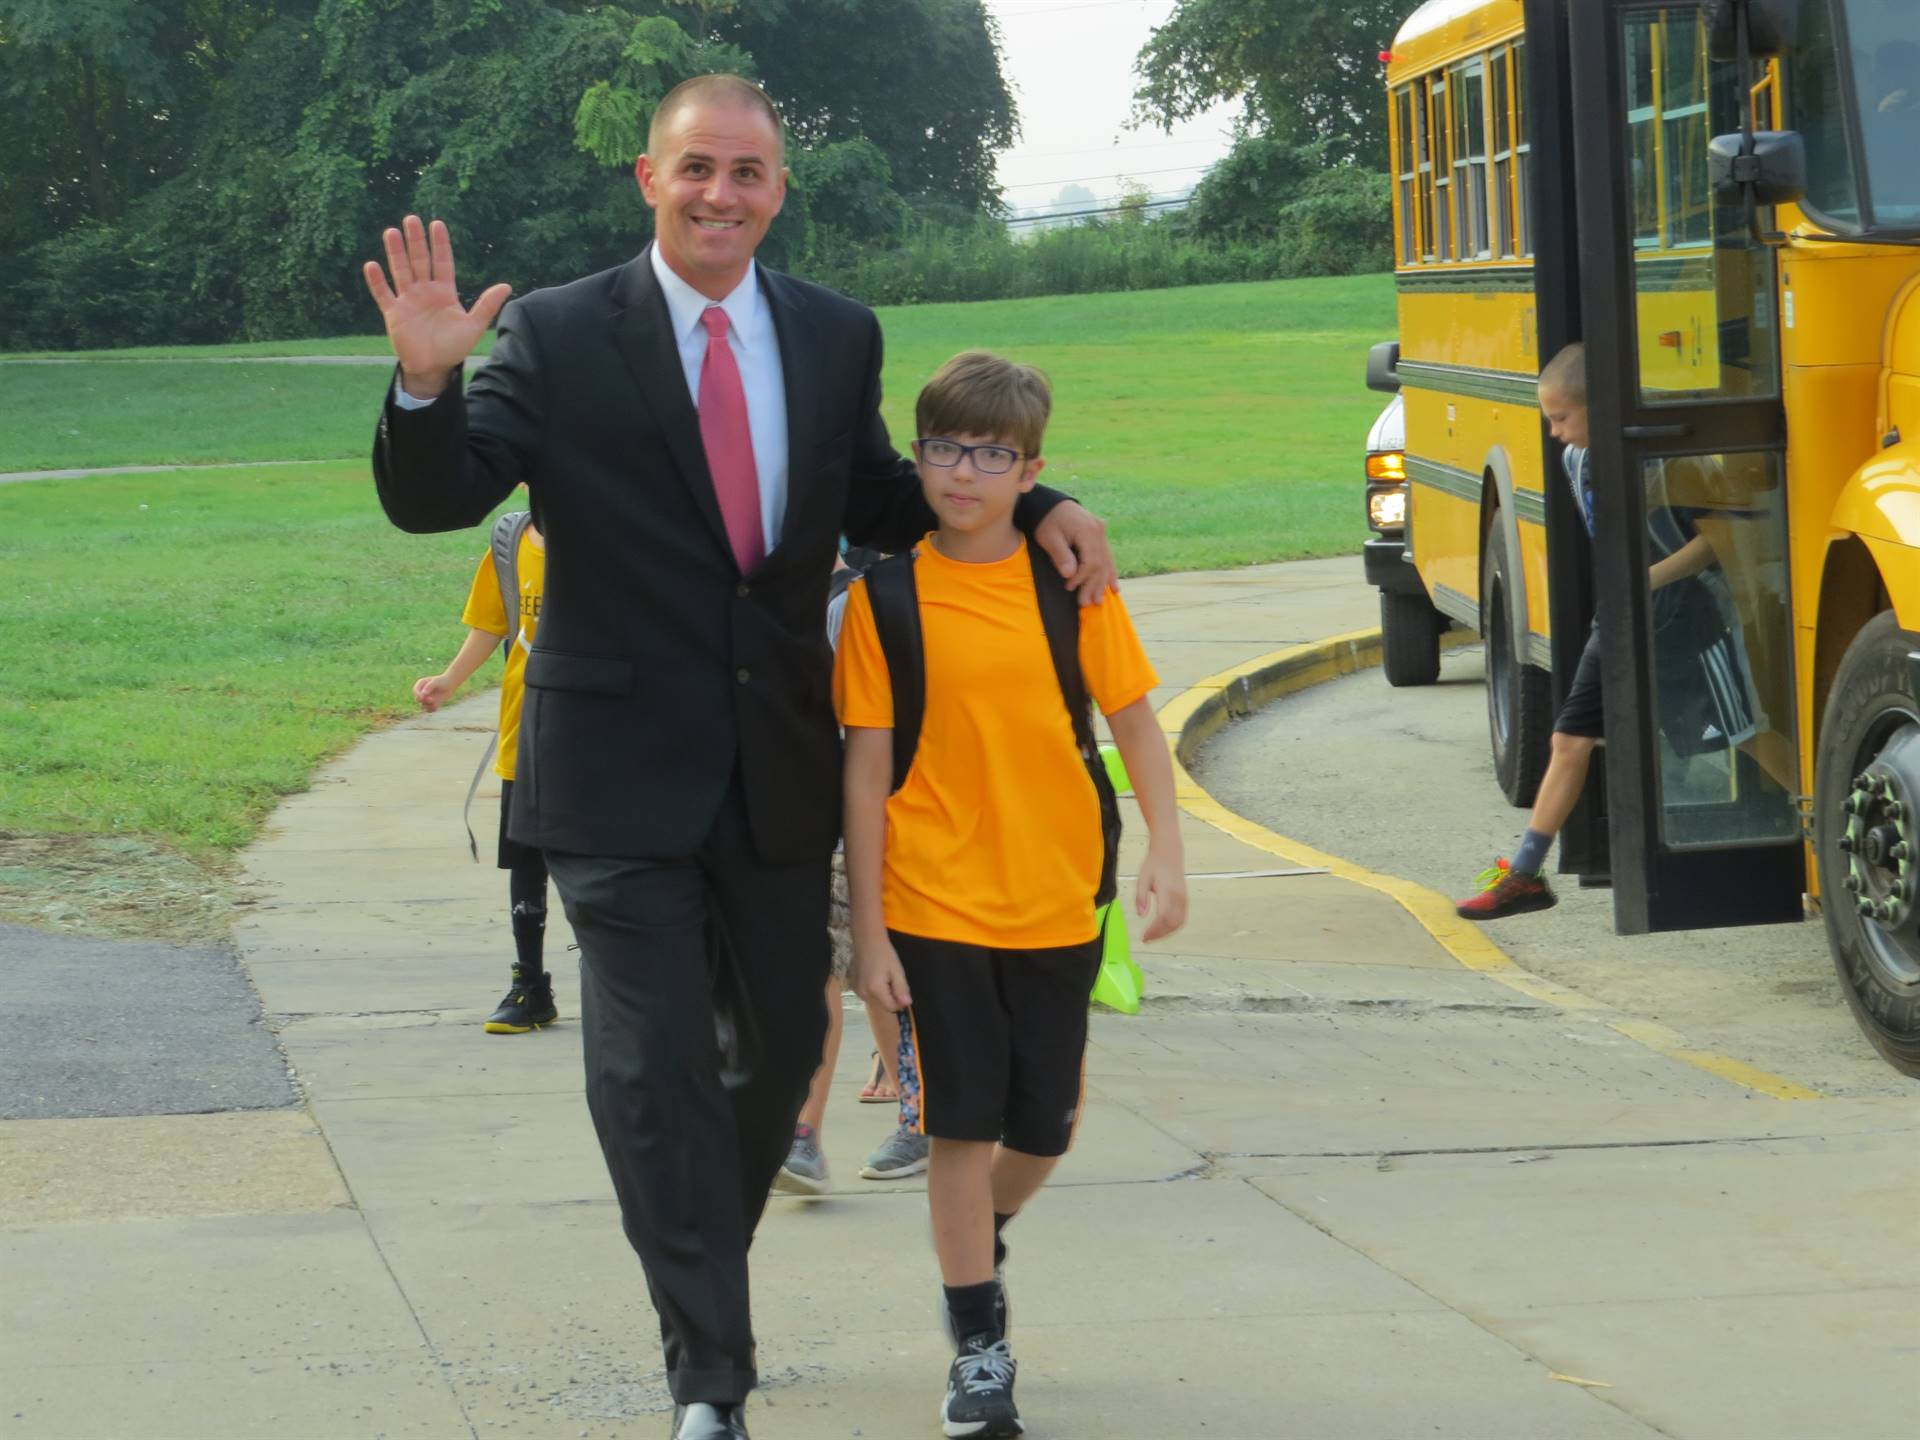 Principal Very welcoming student on first day of school